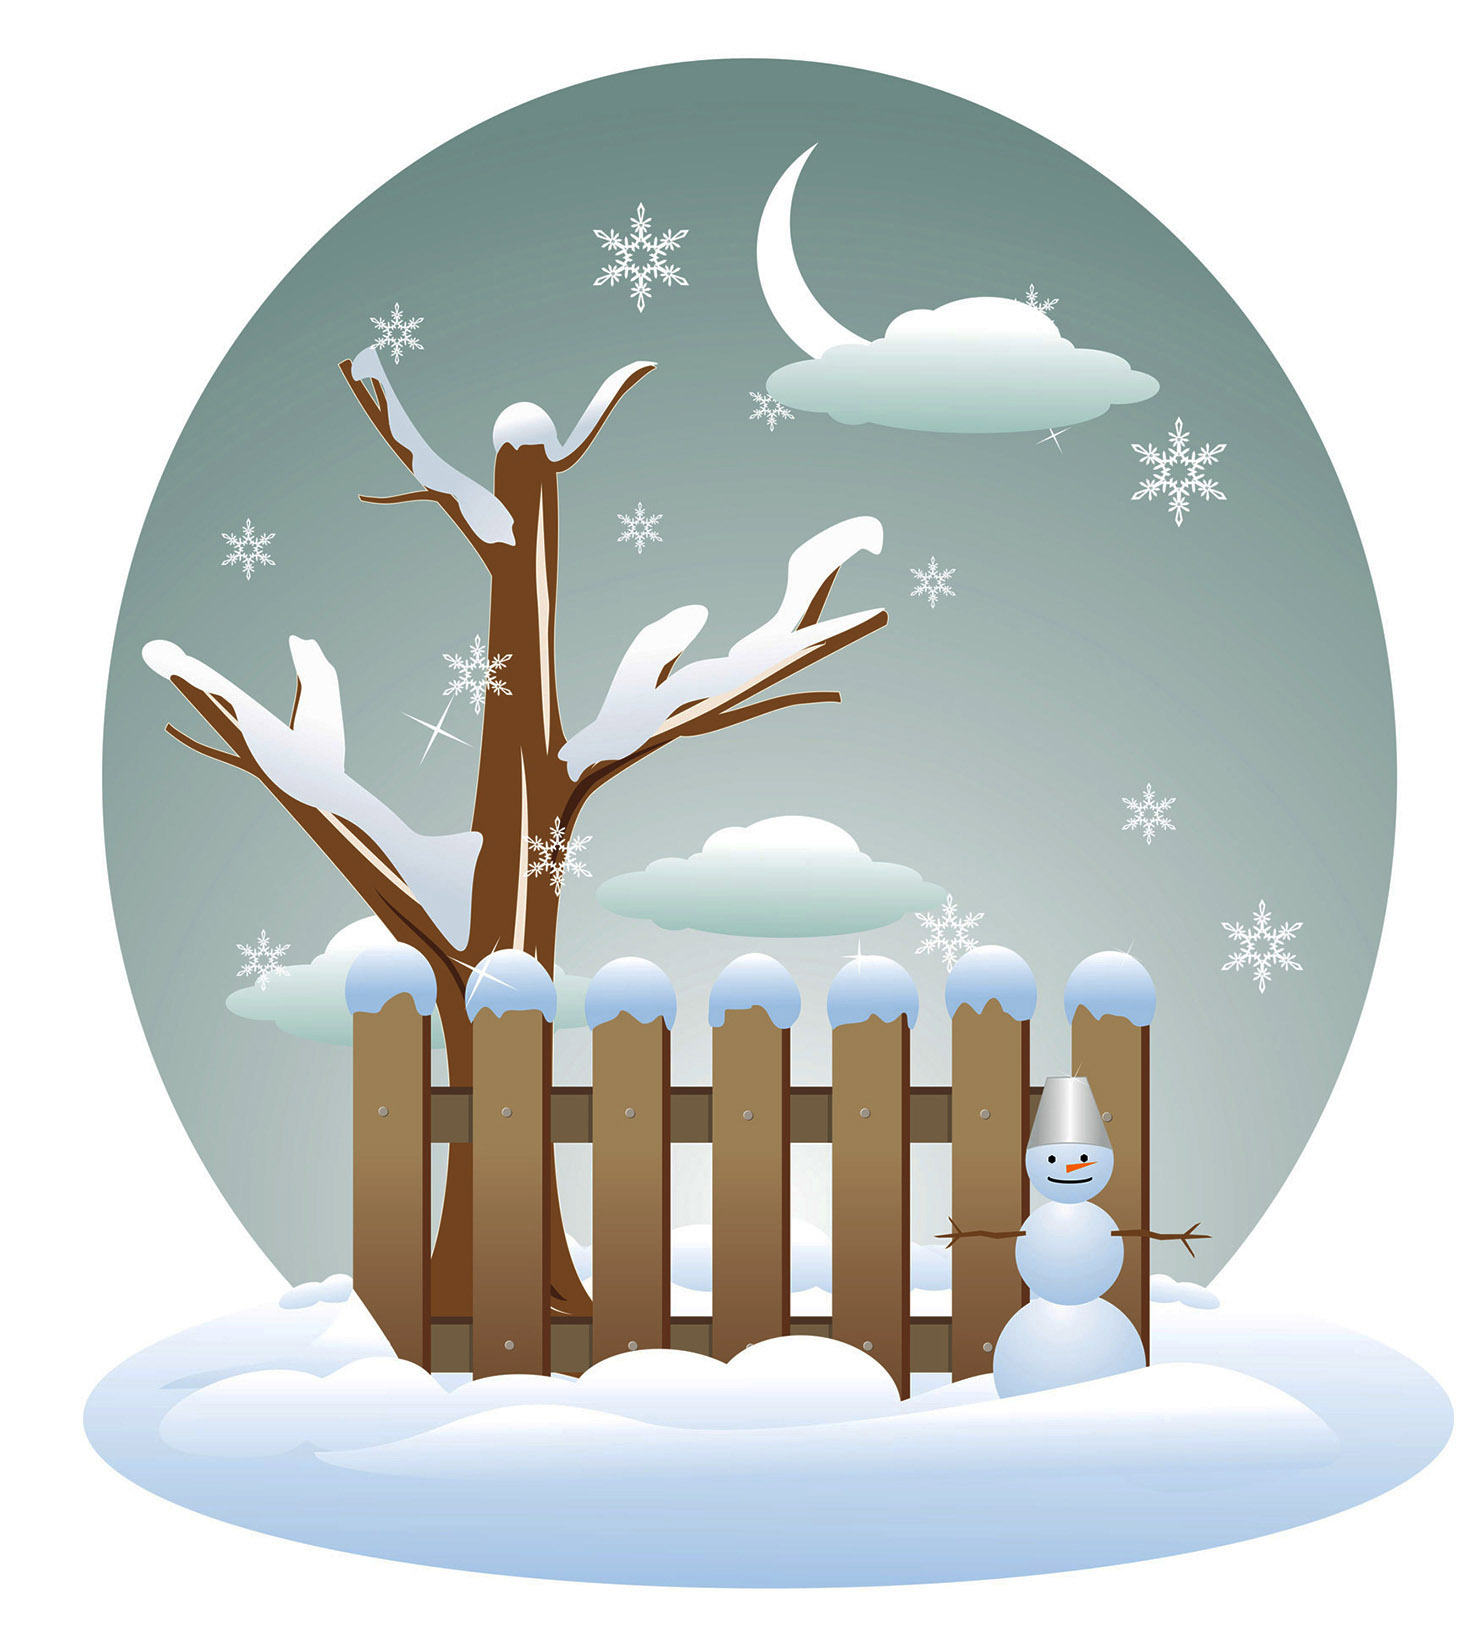 seasons of the year winter clipart